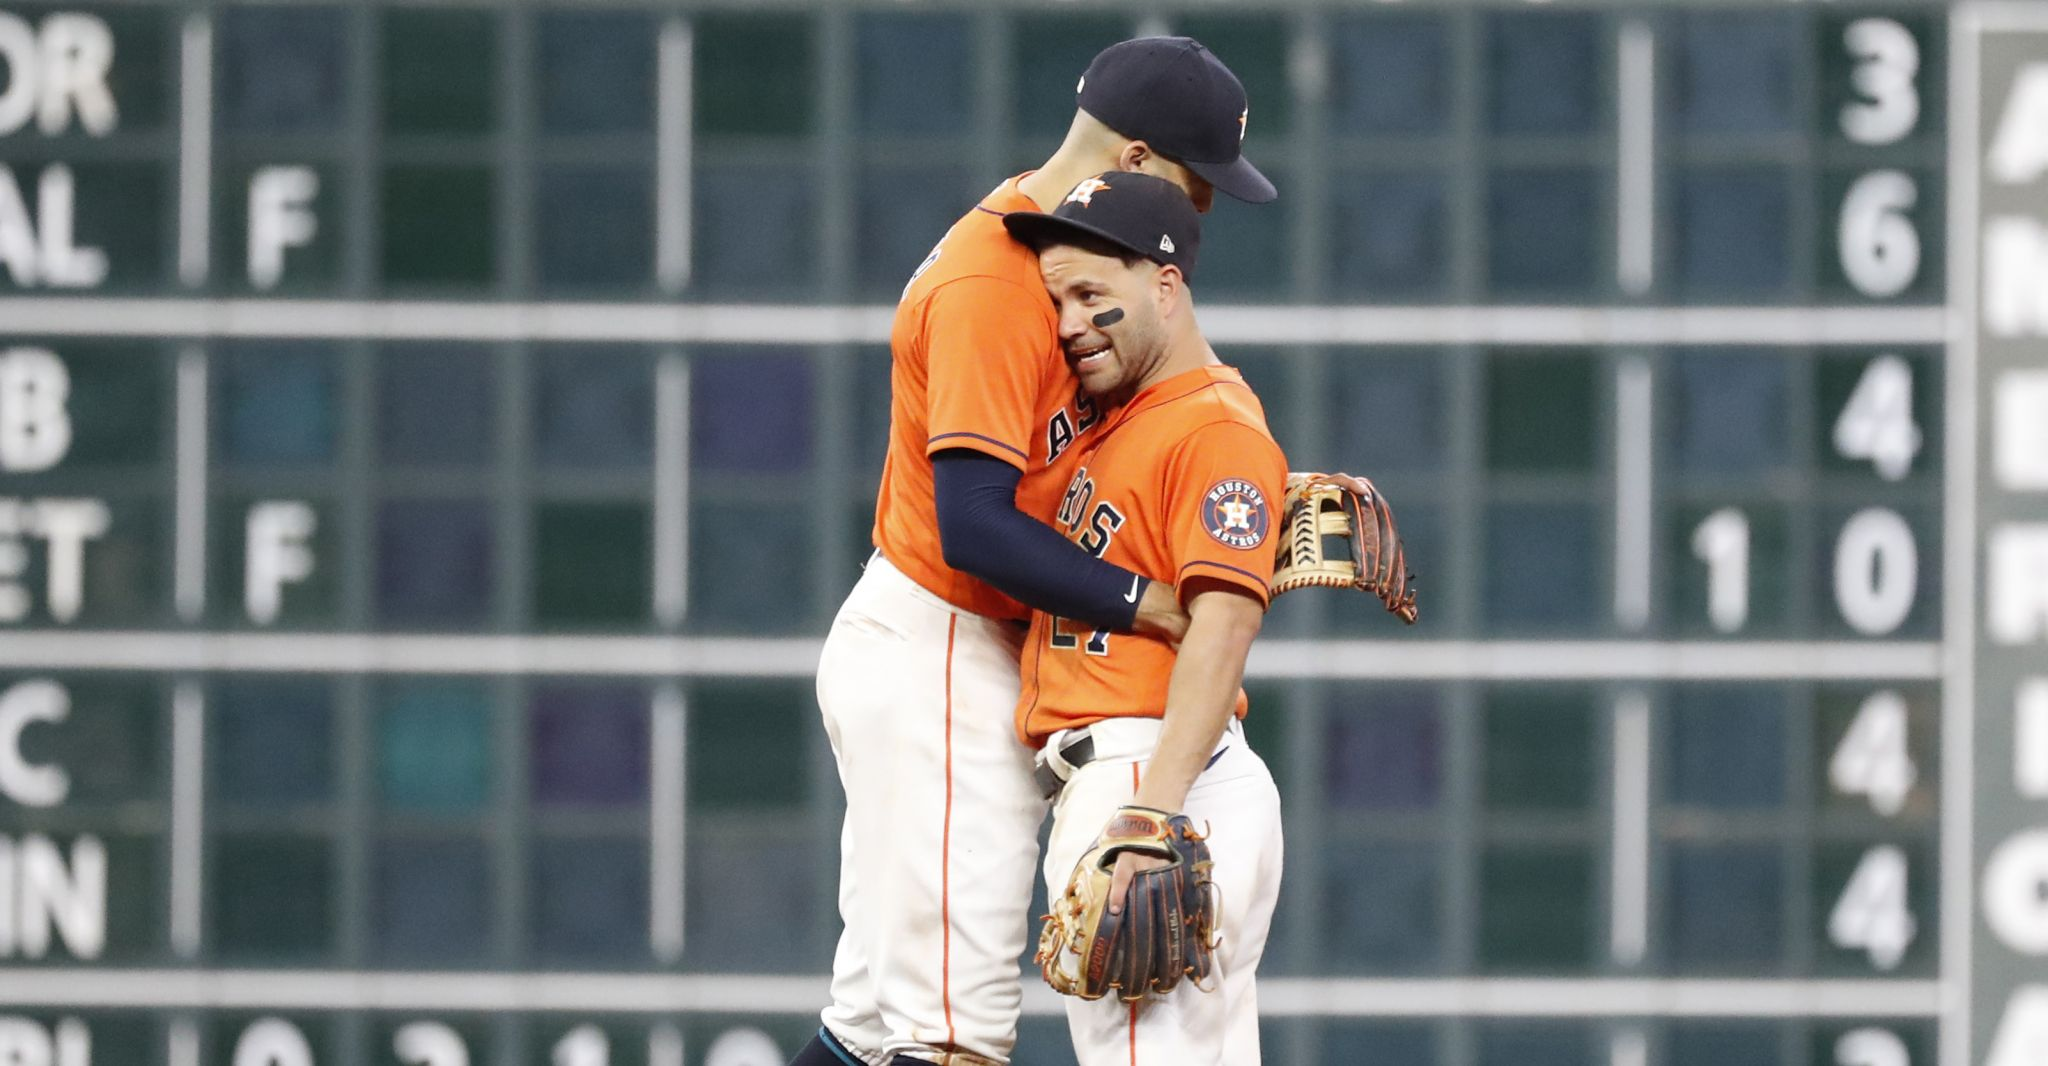 Powerful offense lifts Astros past Angels in sloppy game - Houston Chronicle